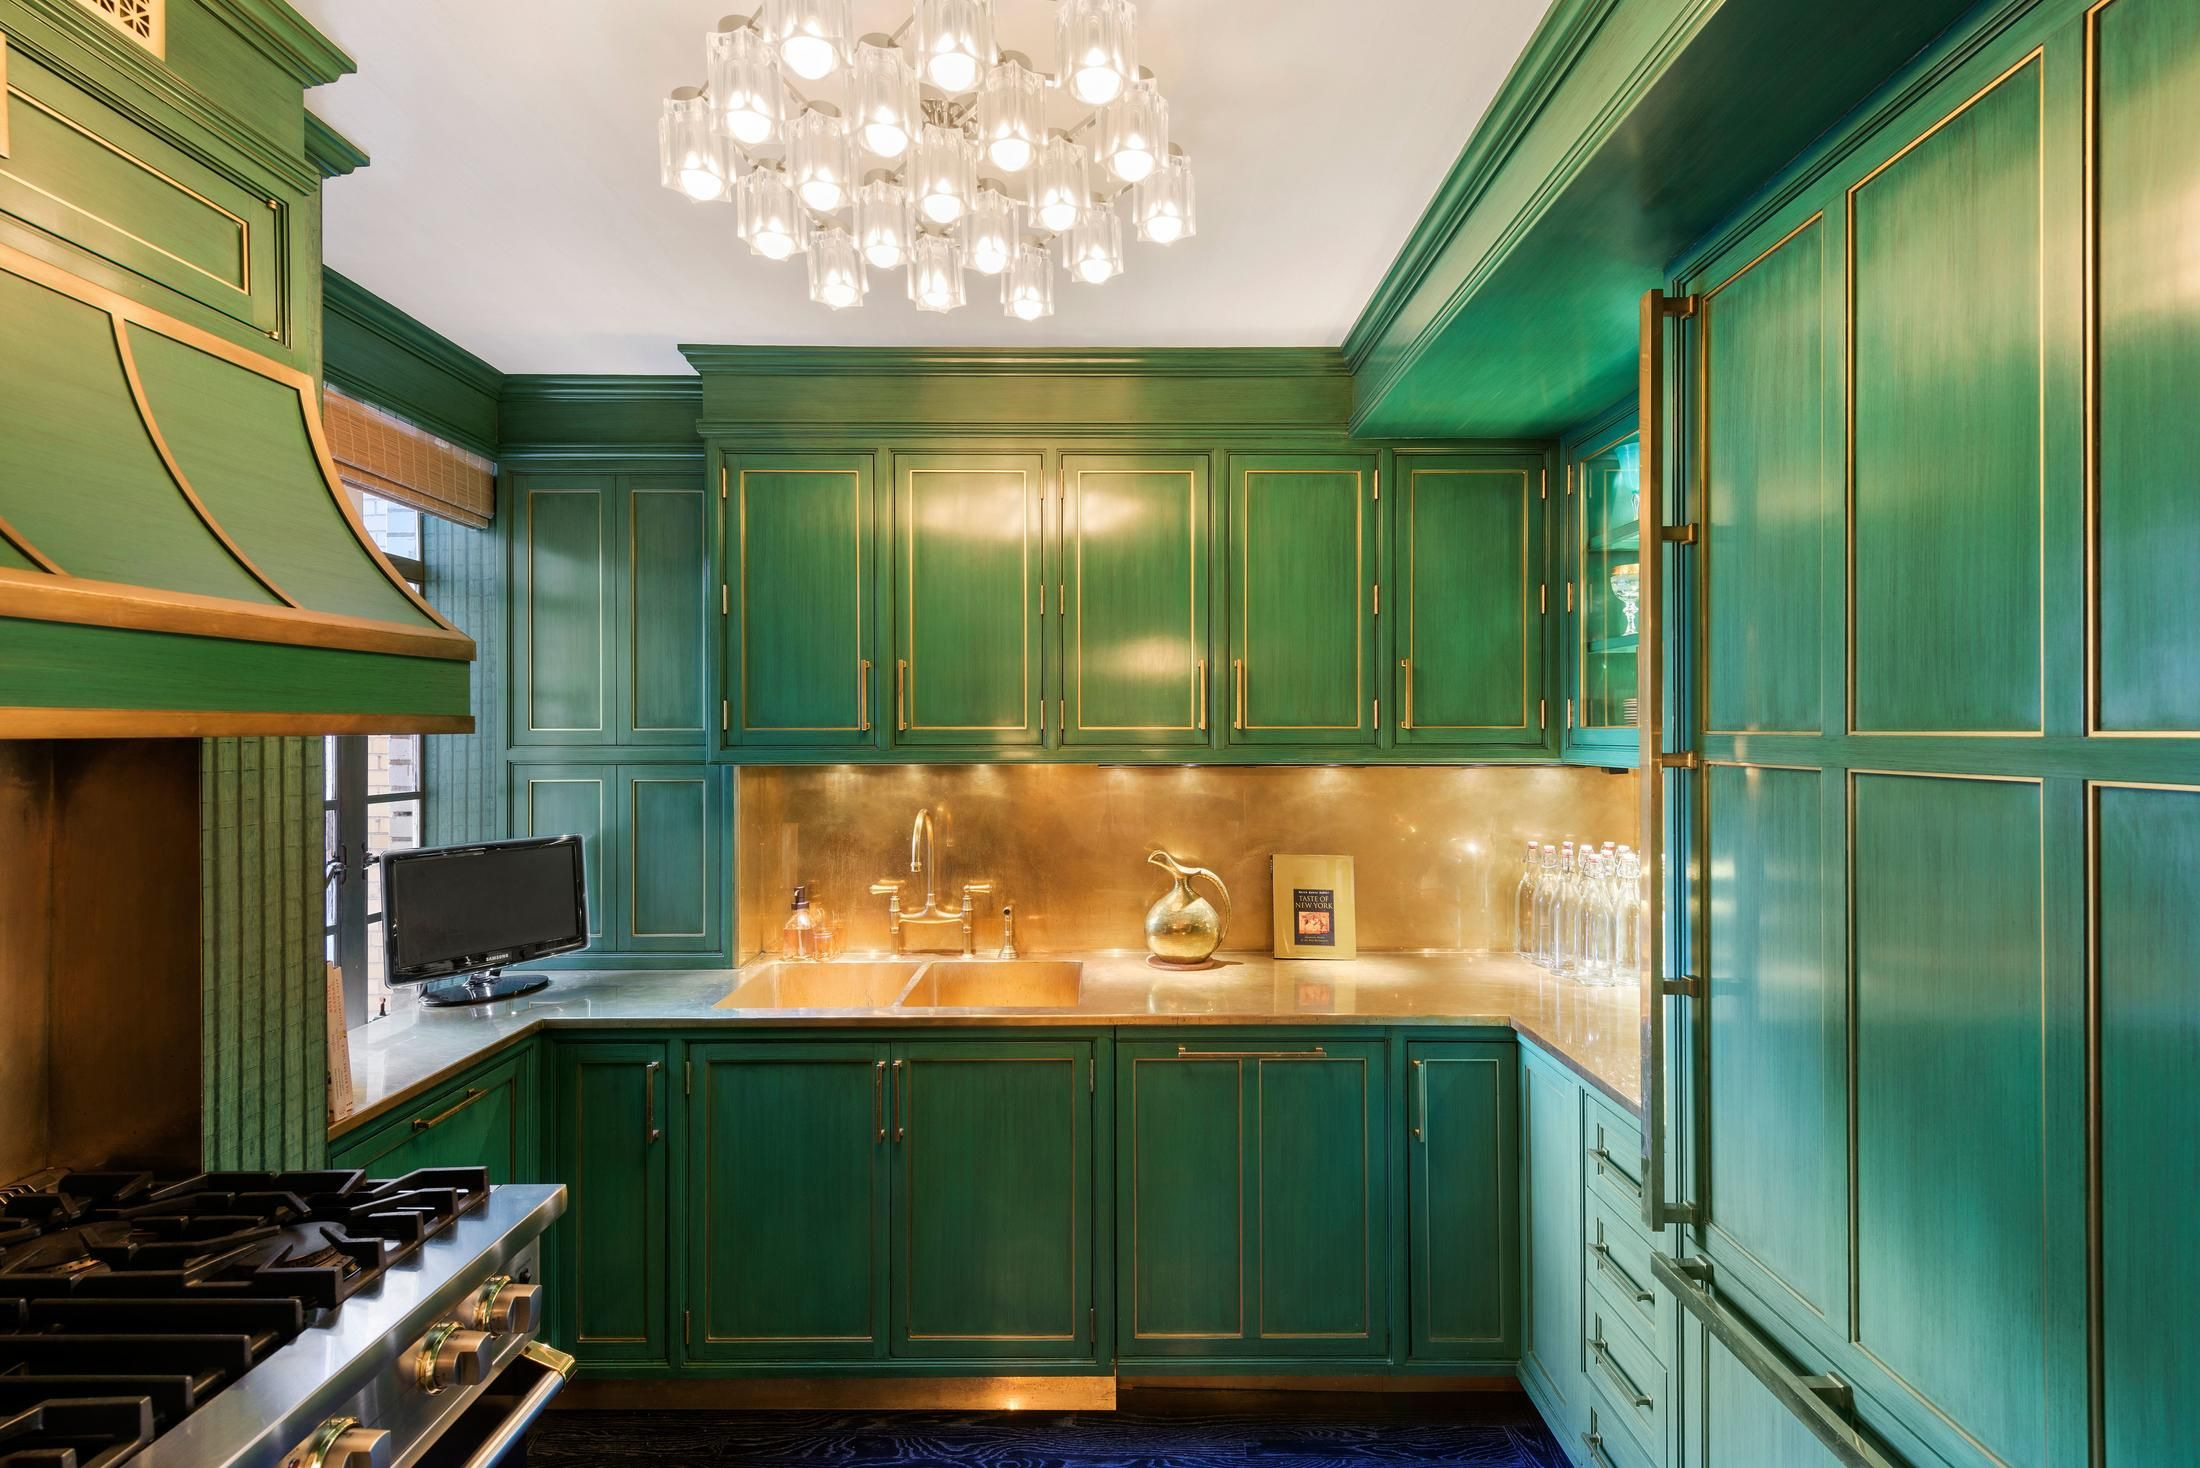 Located in Greenwich Village and overlooking a tree-lined block, the apartment has been Diaz's primary residence since 2008, when she bought the prewar unit for $2.95 million. In typical Wearstler fashion, the interiors are accented with bright colors and metallic details and furnished with vintage and custom-made pieces, all of which can be bought with the apartment.   Stats: $4.25 million, 2 Bedrooms, 2 Baths, 1,400 sq. ft.,